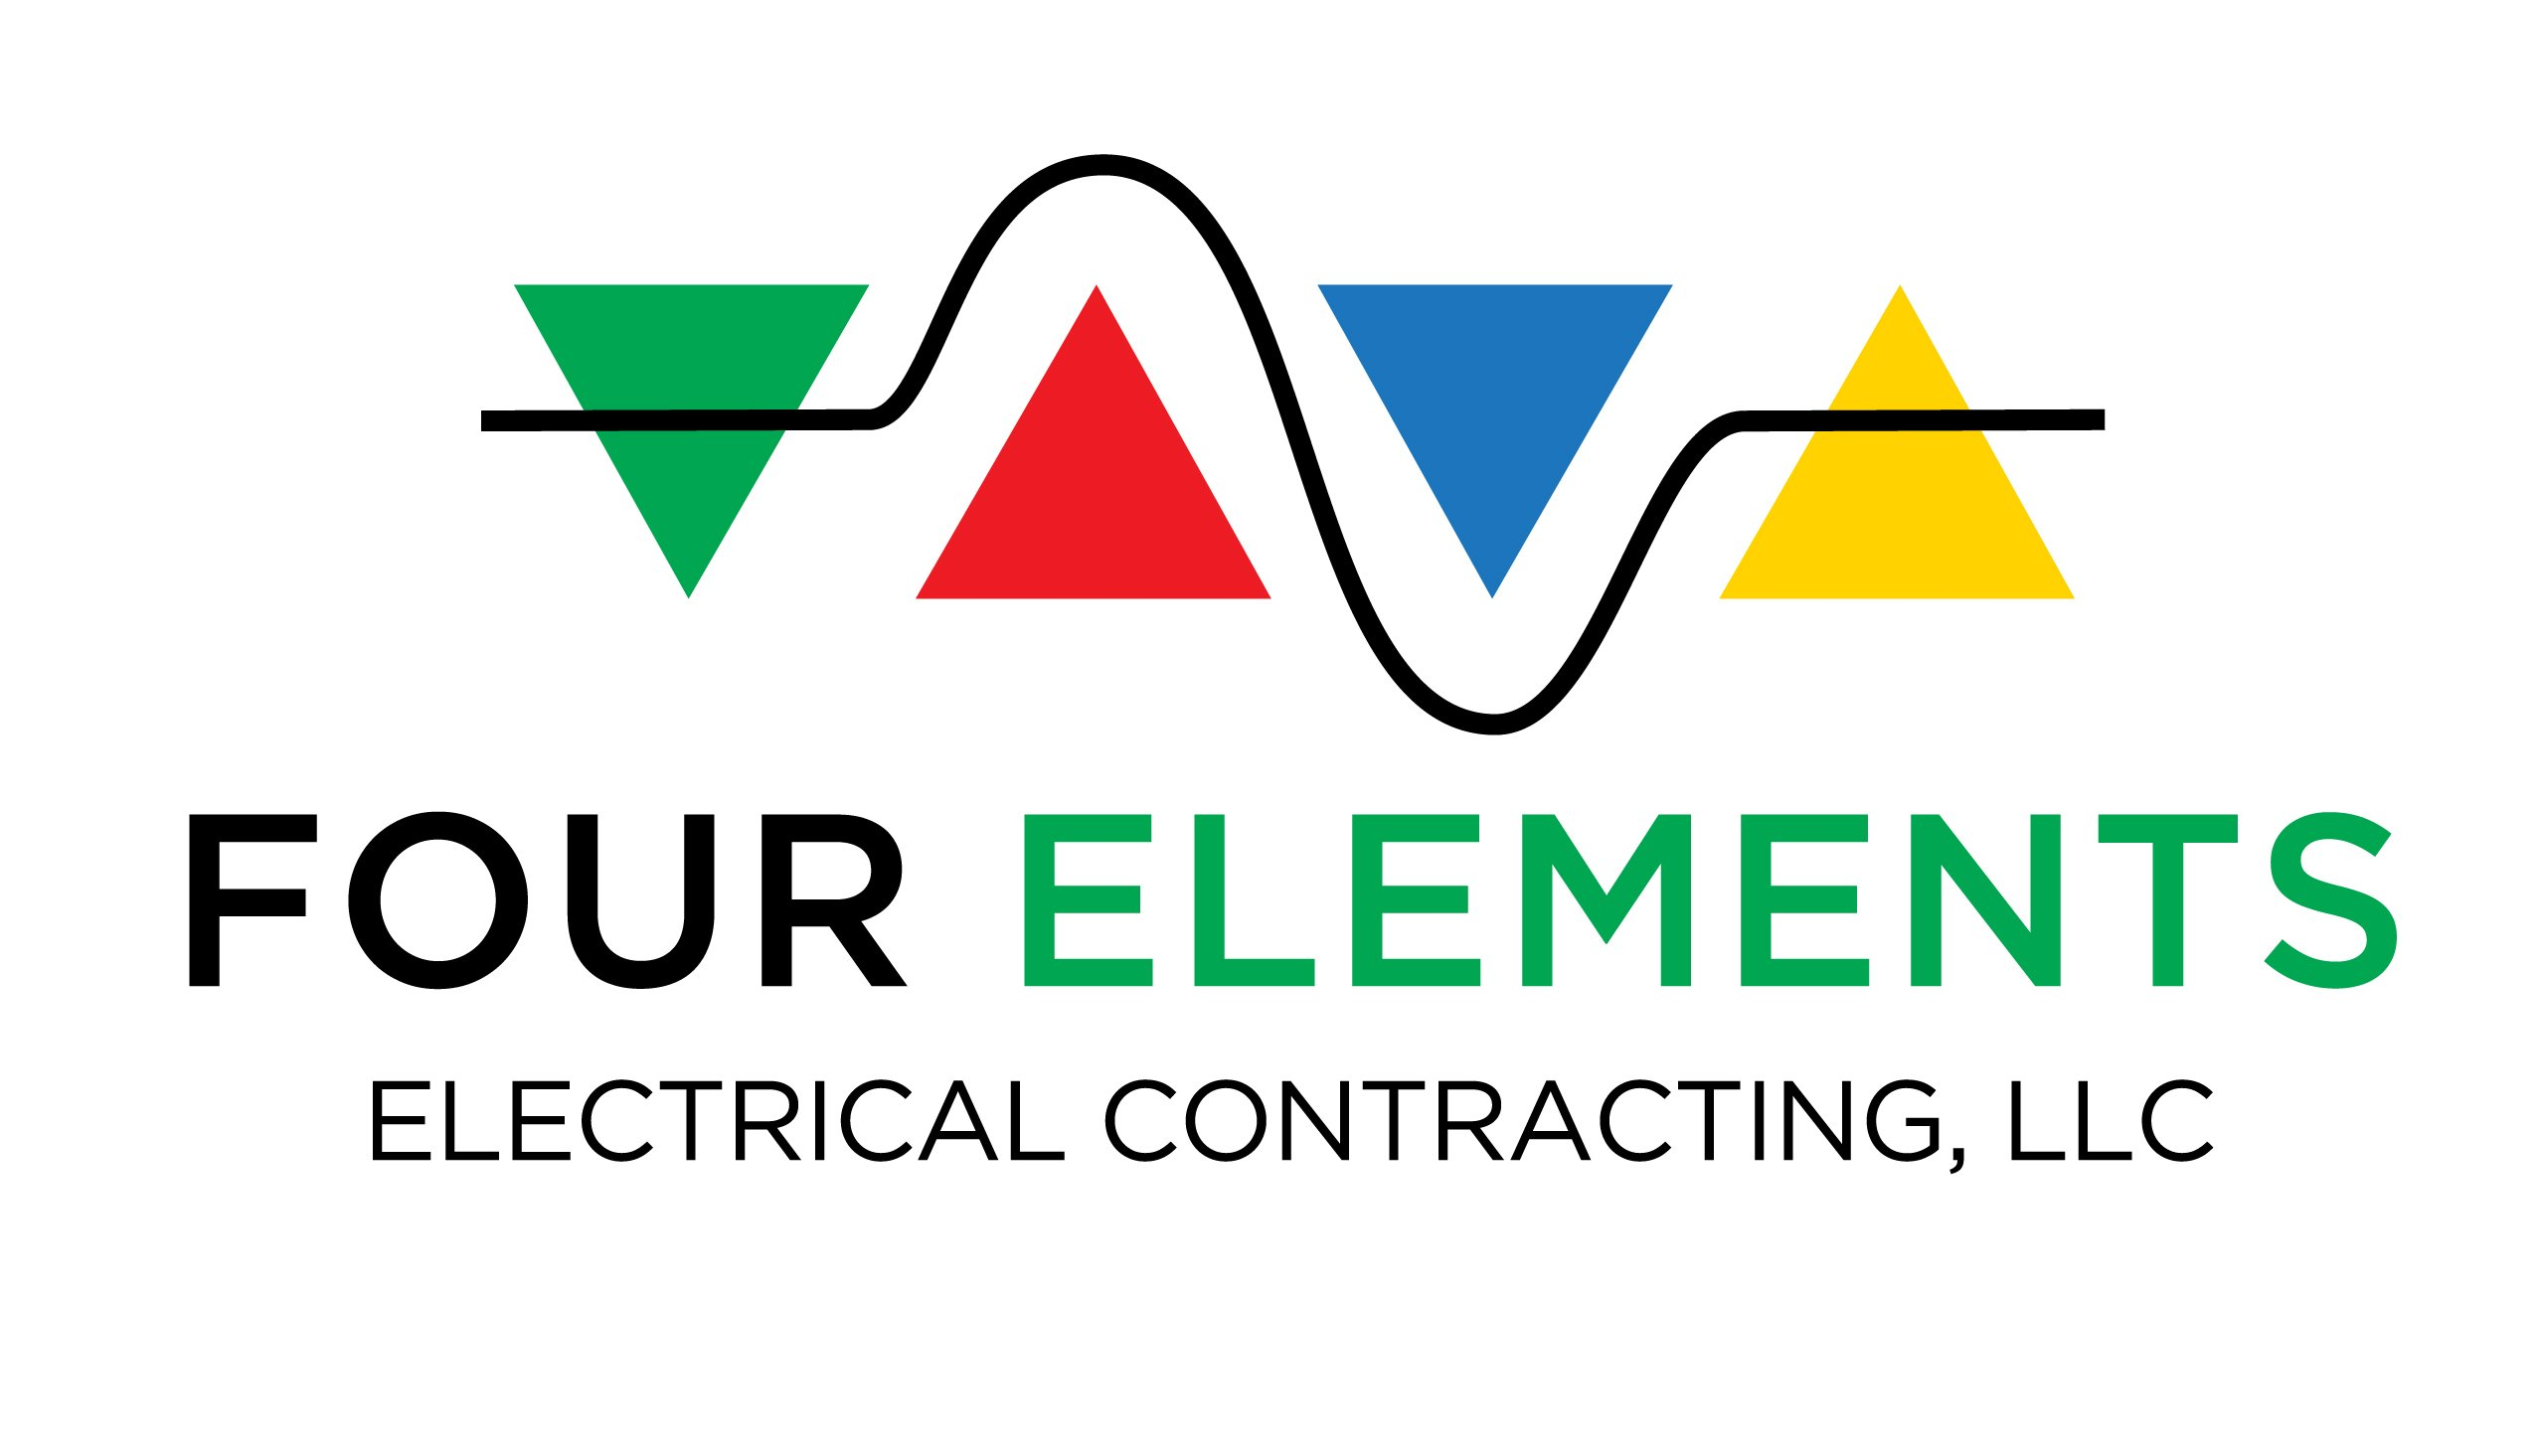 Four Elements Electrical Contracting